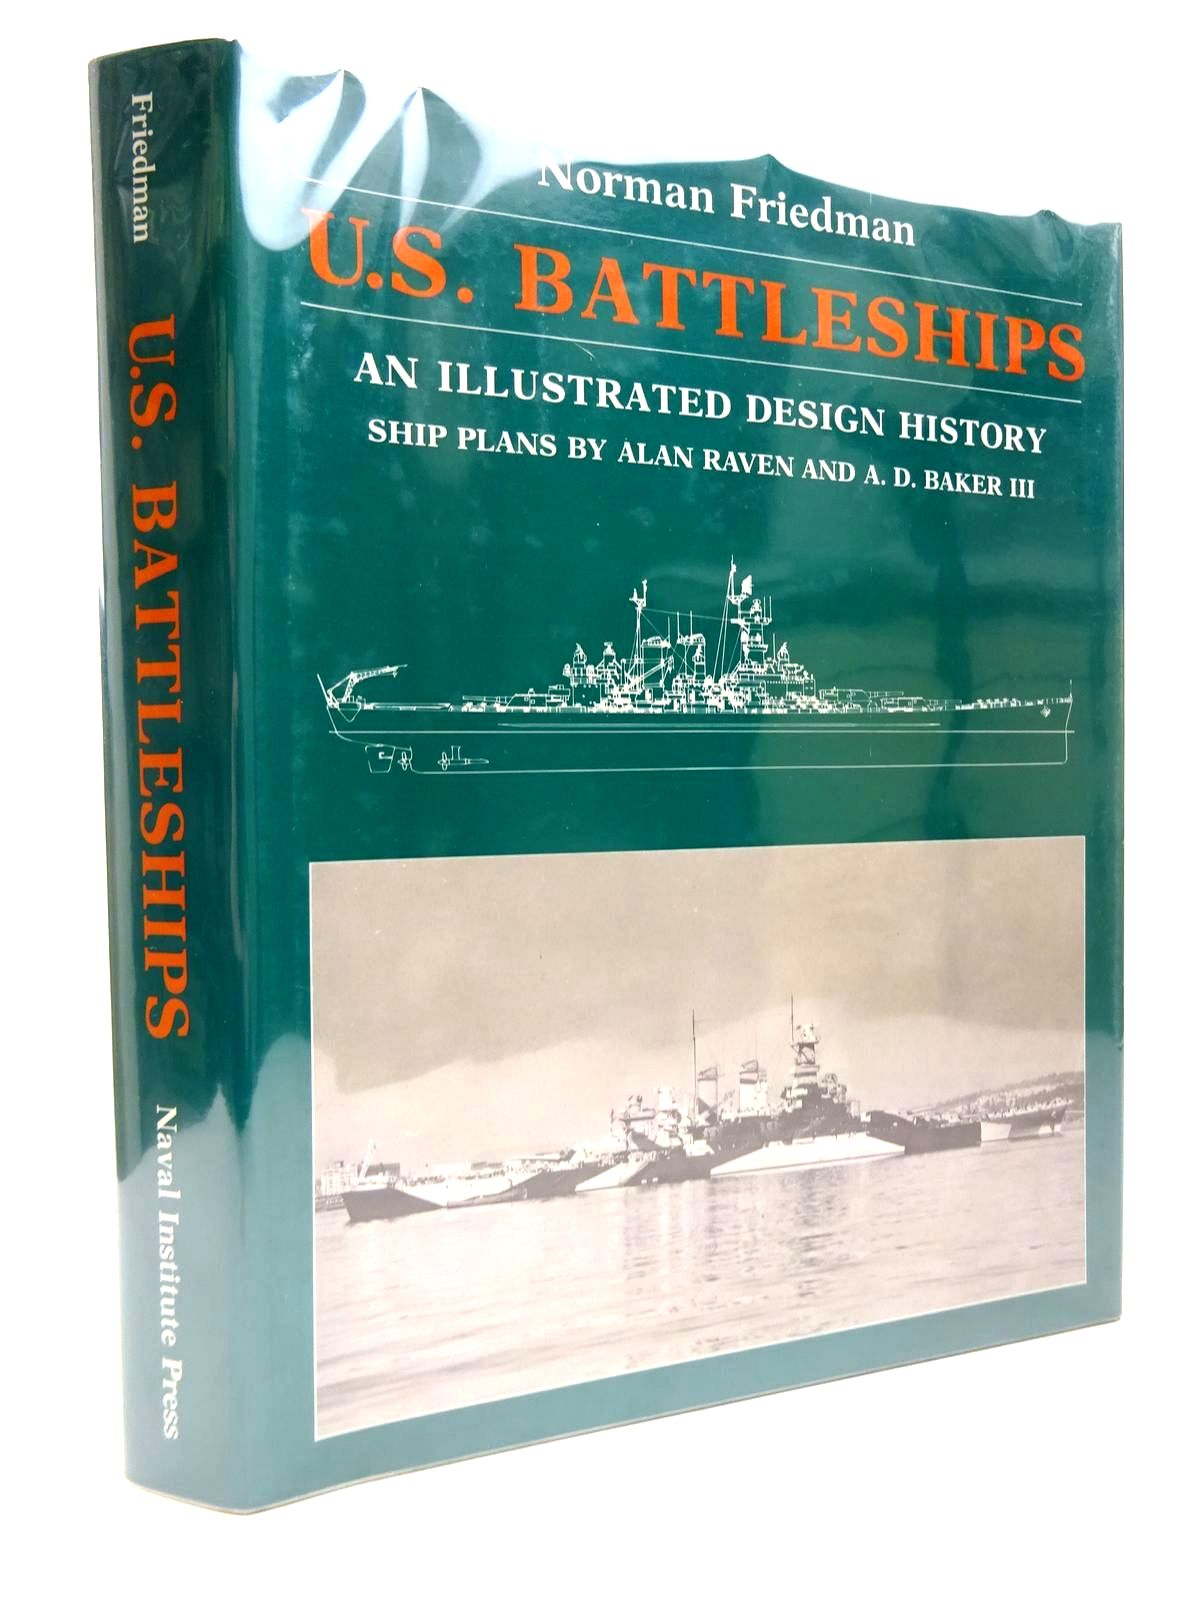 Photo of U.S. BATTLESHIPS written by Friedman, Norman published by Naval Institute Press (STOCK CODE: 2130472)  for sale by Stella & Rose's Books